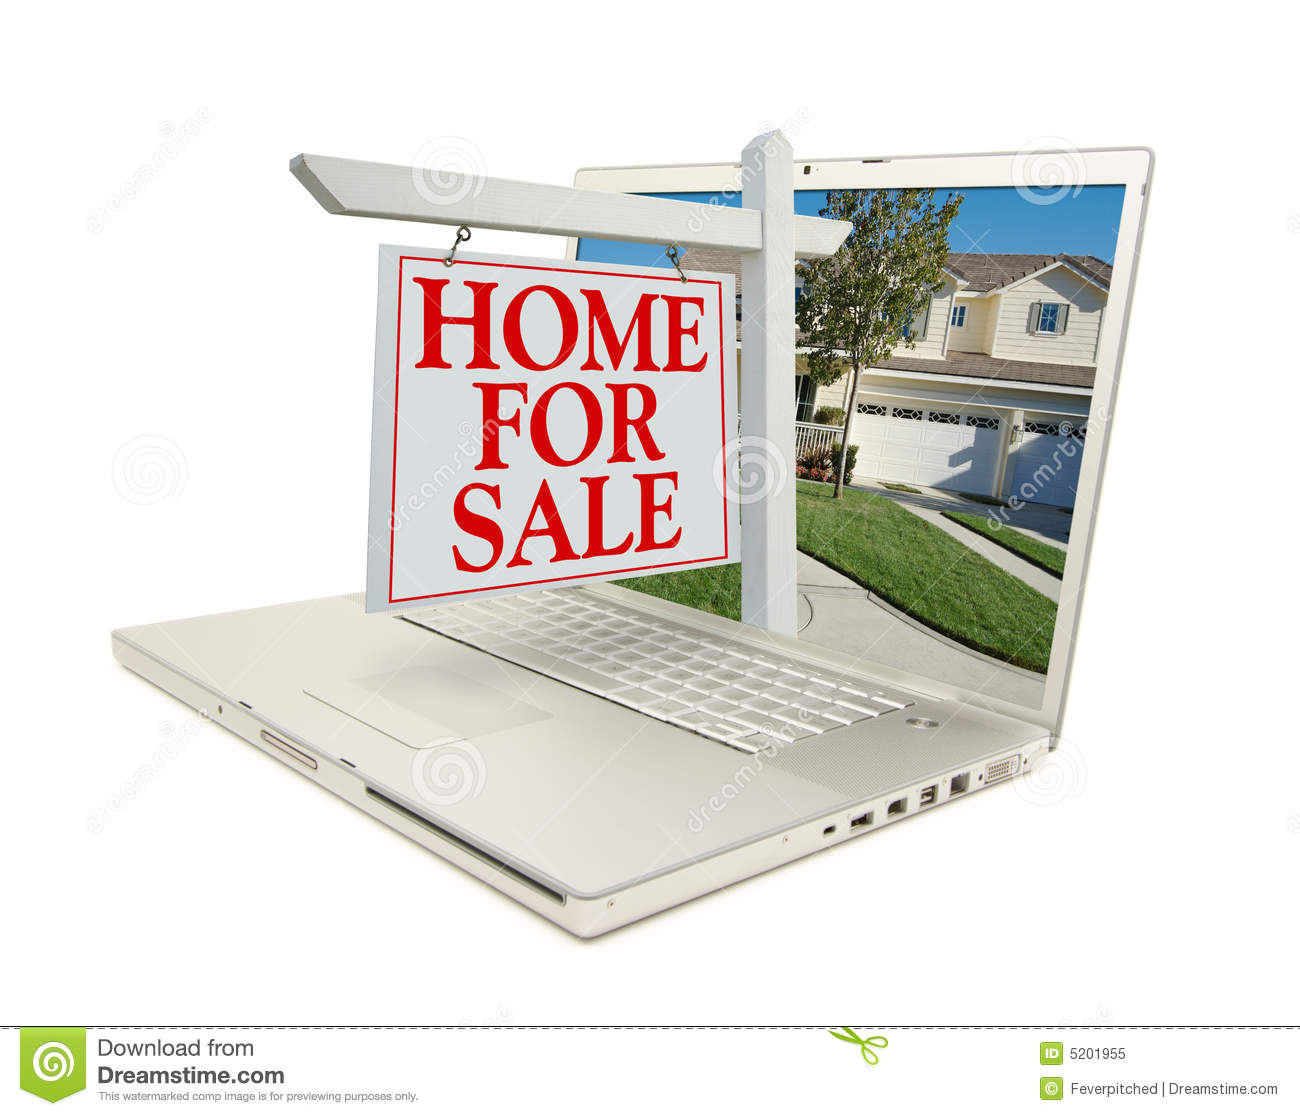 Home for sale sign new home on laptop royalty free for New home sign